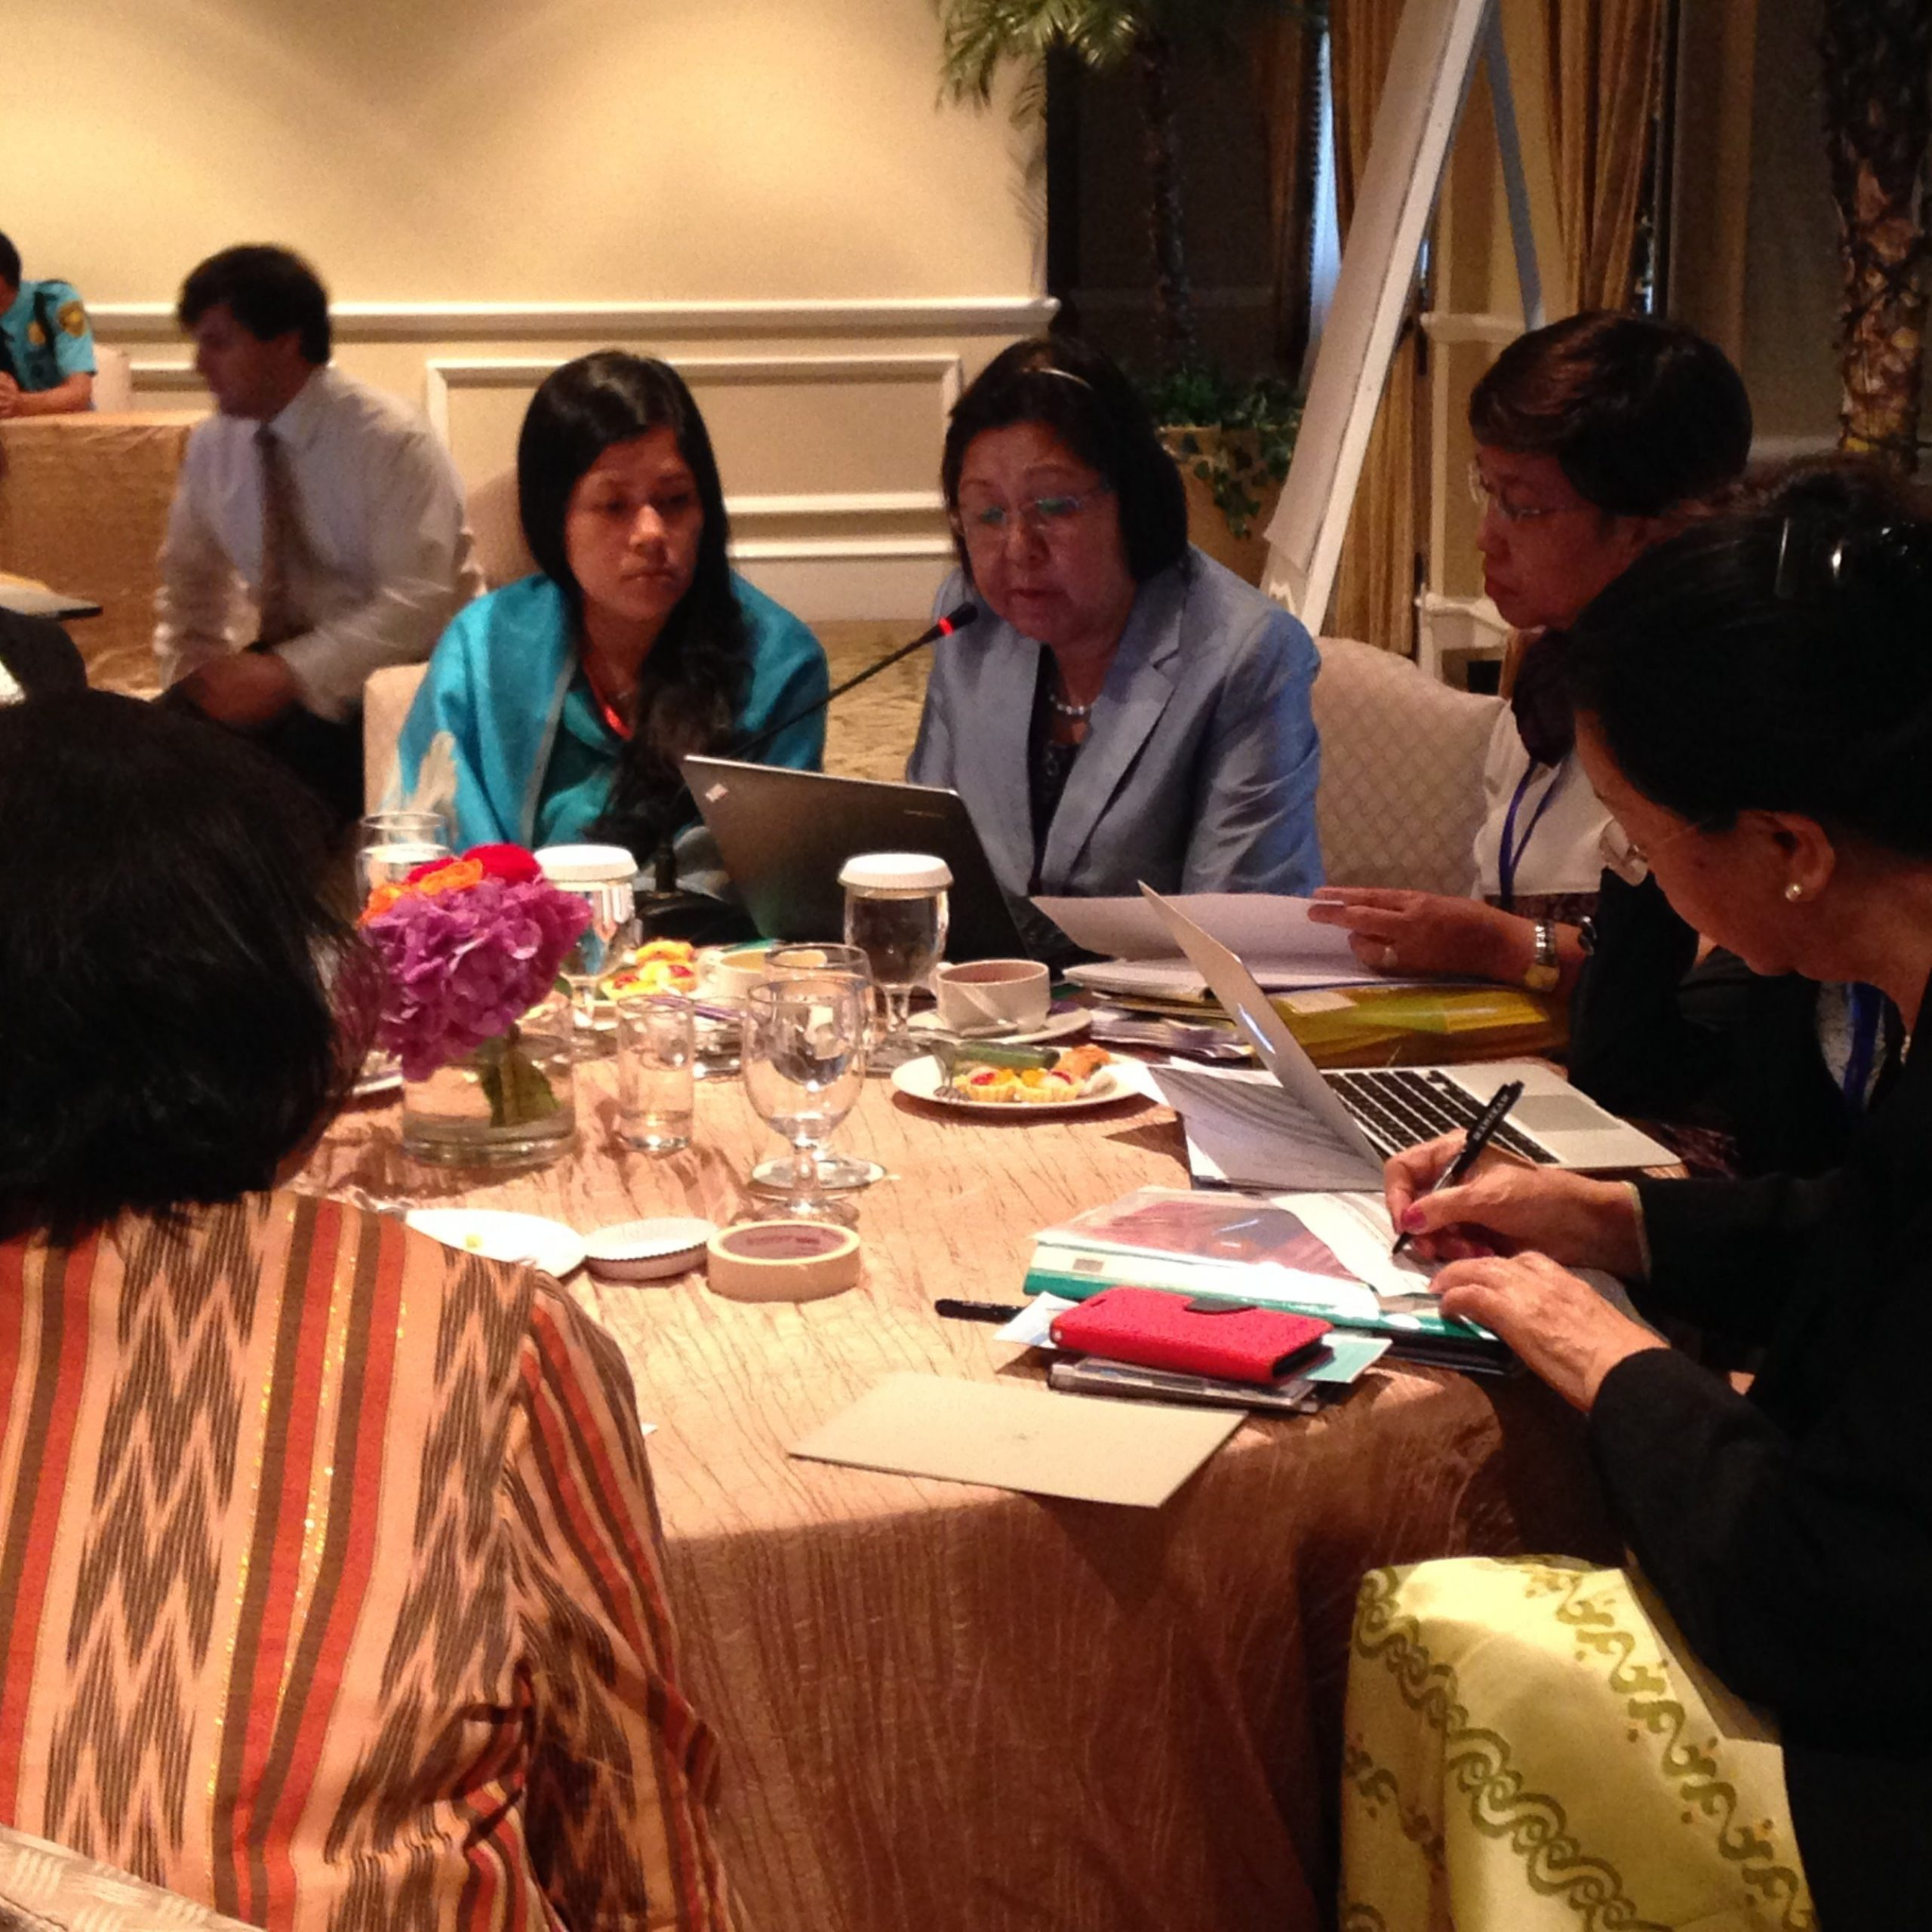 ACWC discussion group (Asian Commission for Women and Children) working group